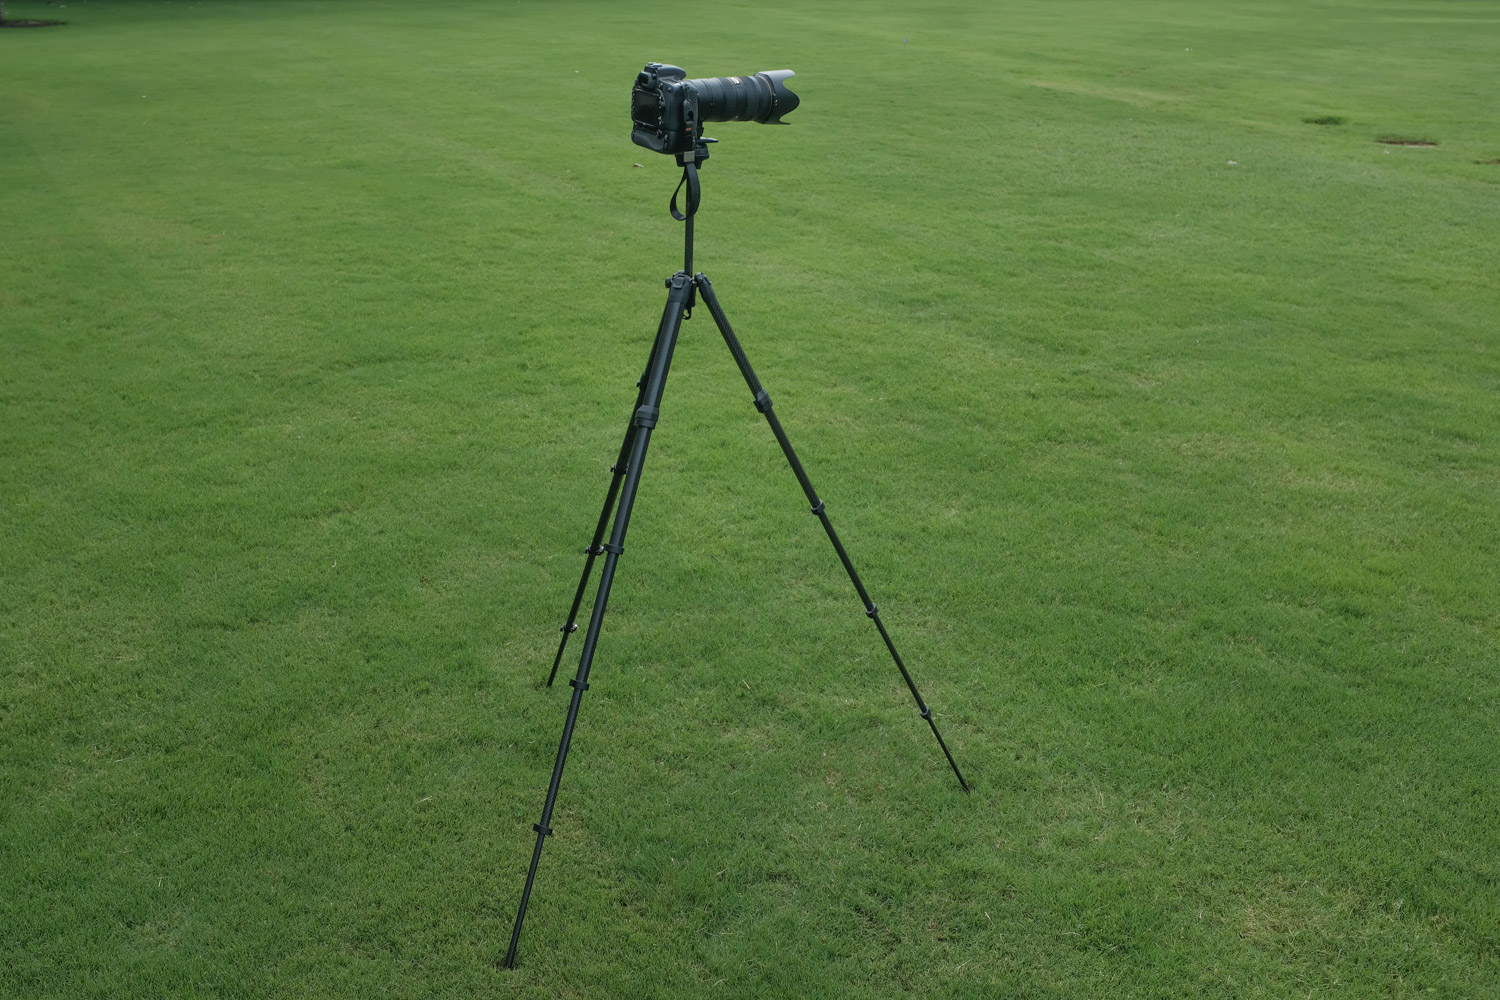 Image: With the legs and center column fully extended the Travel Tripod is almost the same size as m...